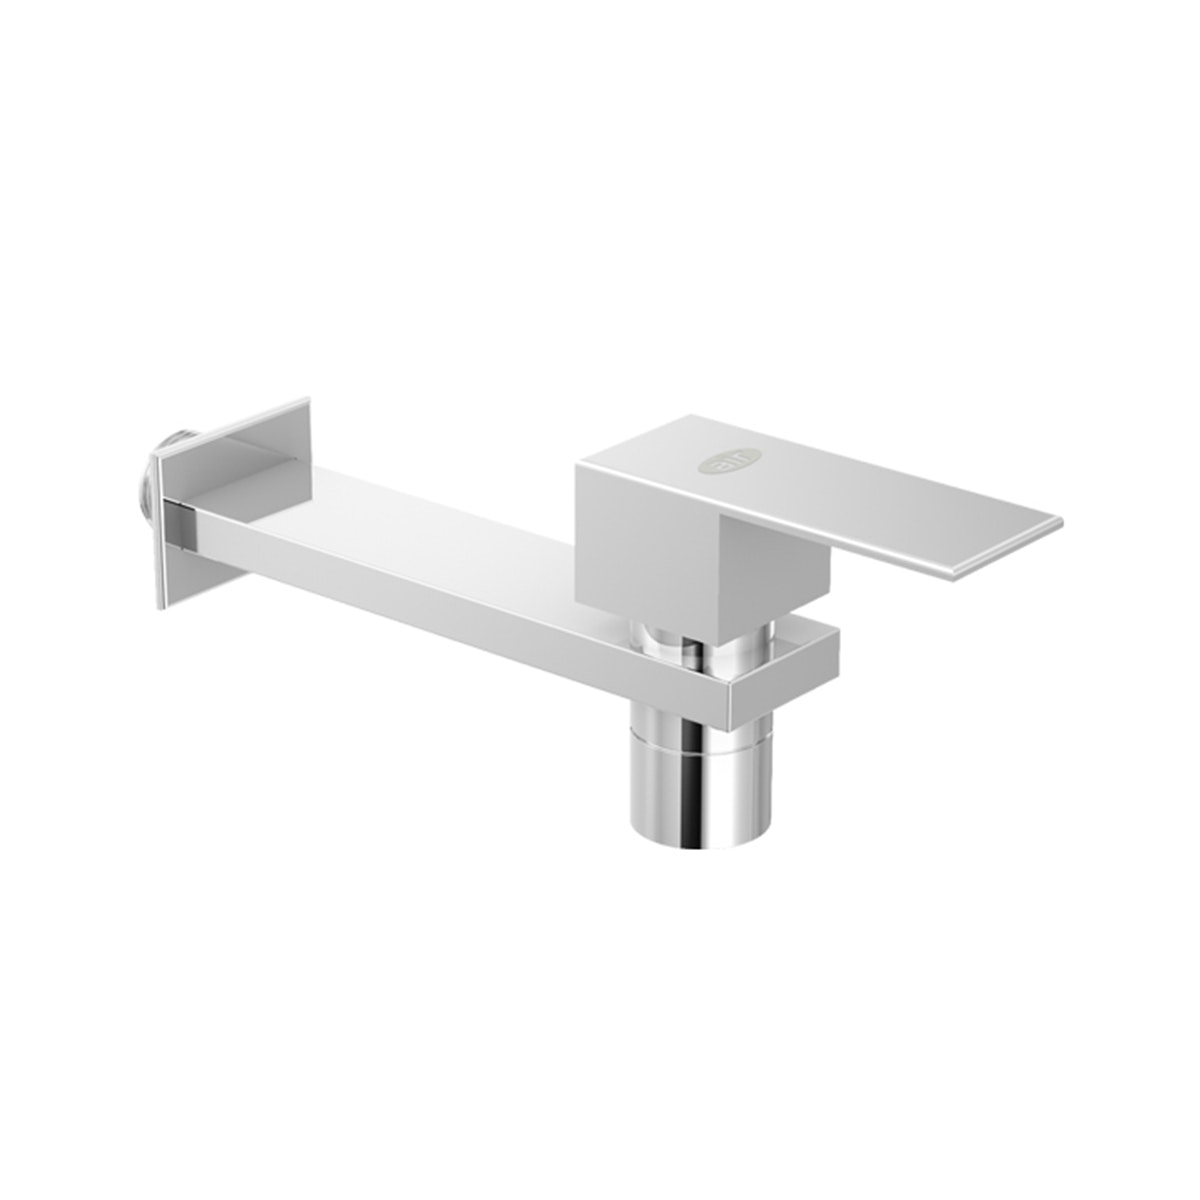 AER Kran Single Keran Air / Single Faucet TS 1 Z (14 x 4 x 11 cm)